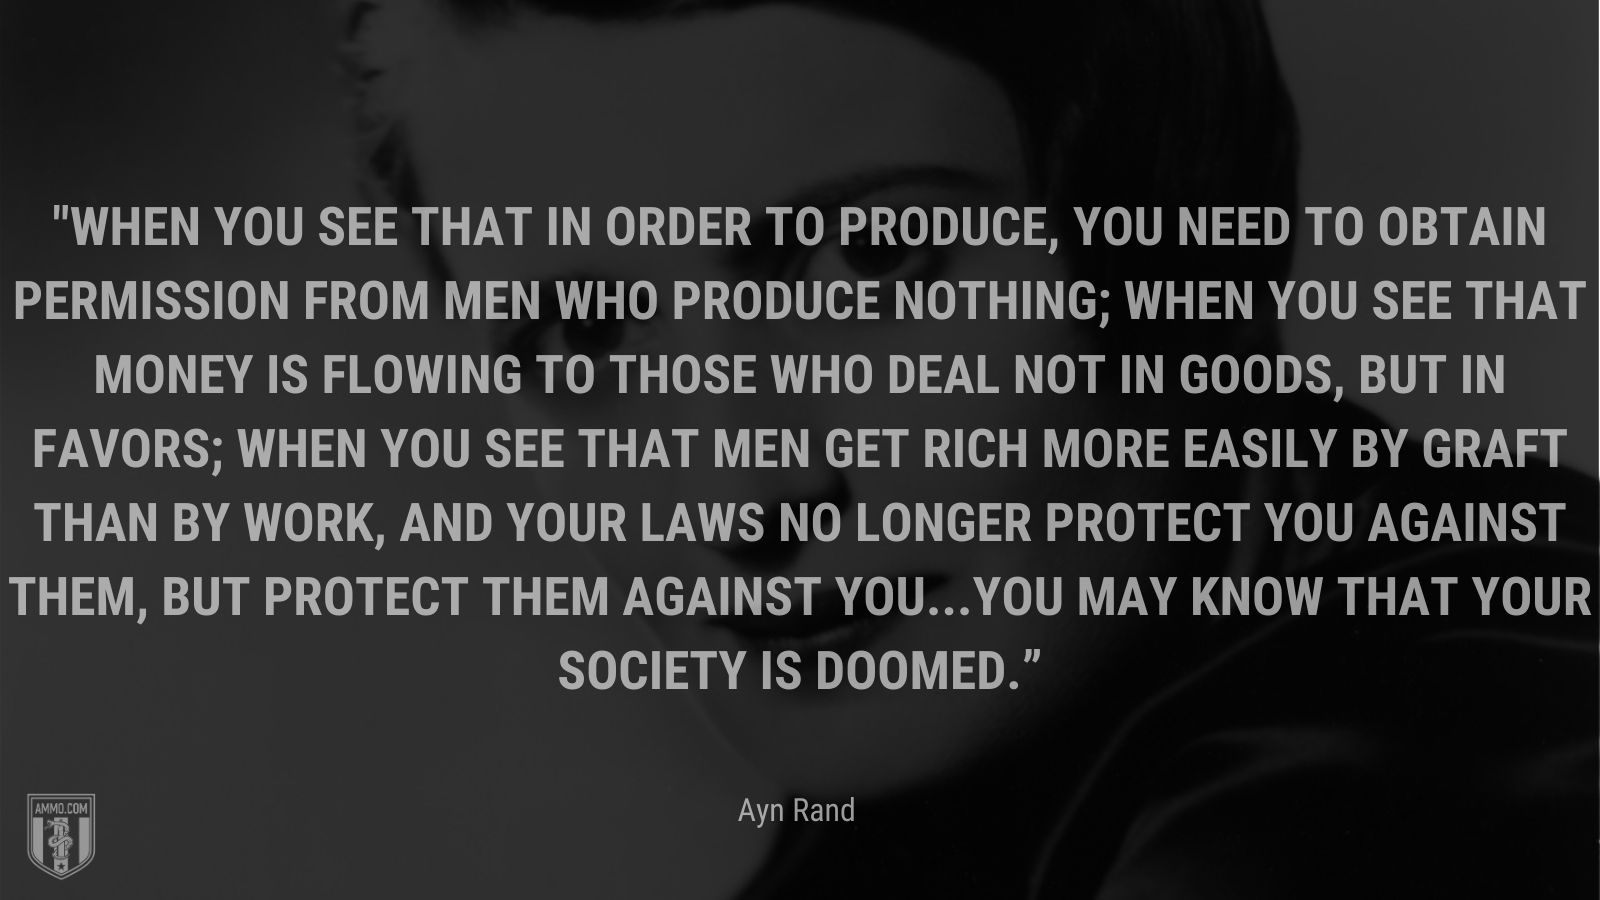 """""""When you see that in order to produce, you need to obtain permission from men who produce nothing; when you see that money is flowing to those who deal not in goods, but in favors; when you see that men get rich more easily by graft than by work, and your laws no longer protect you against them, but protect them against you...you may know that your society is doomed."""" - Ayn Rand"""